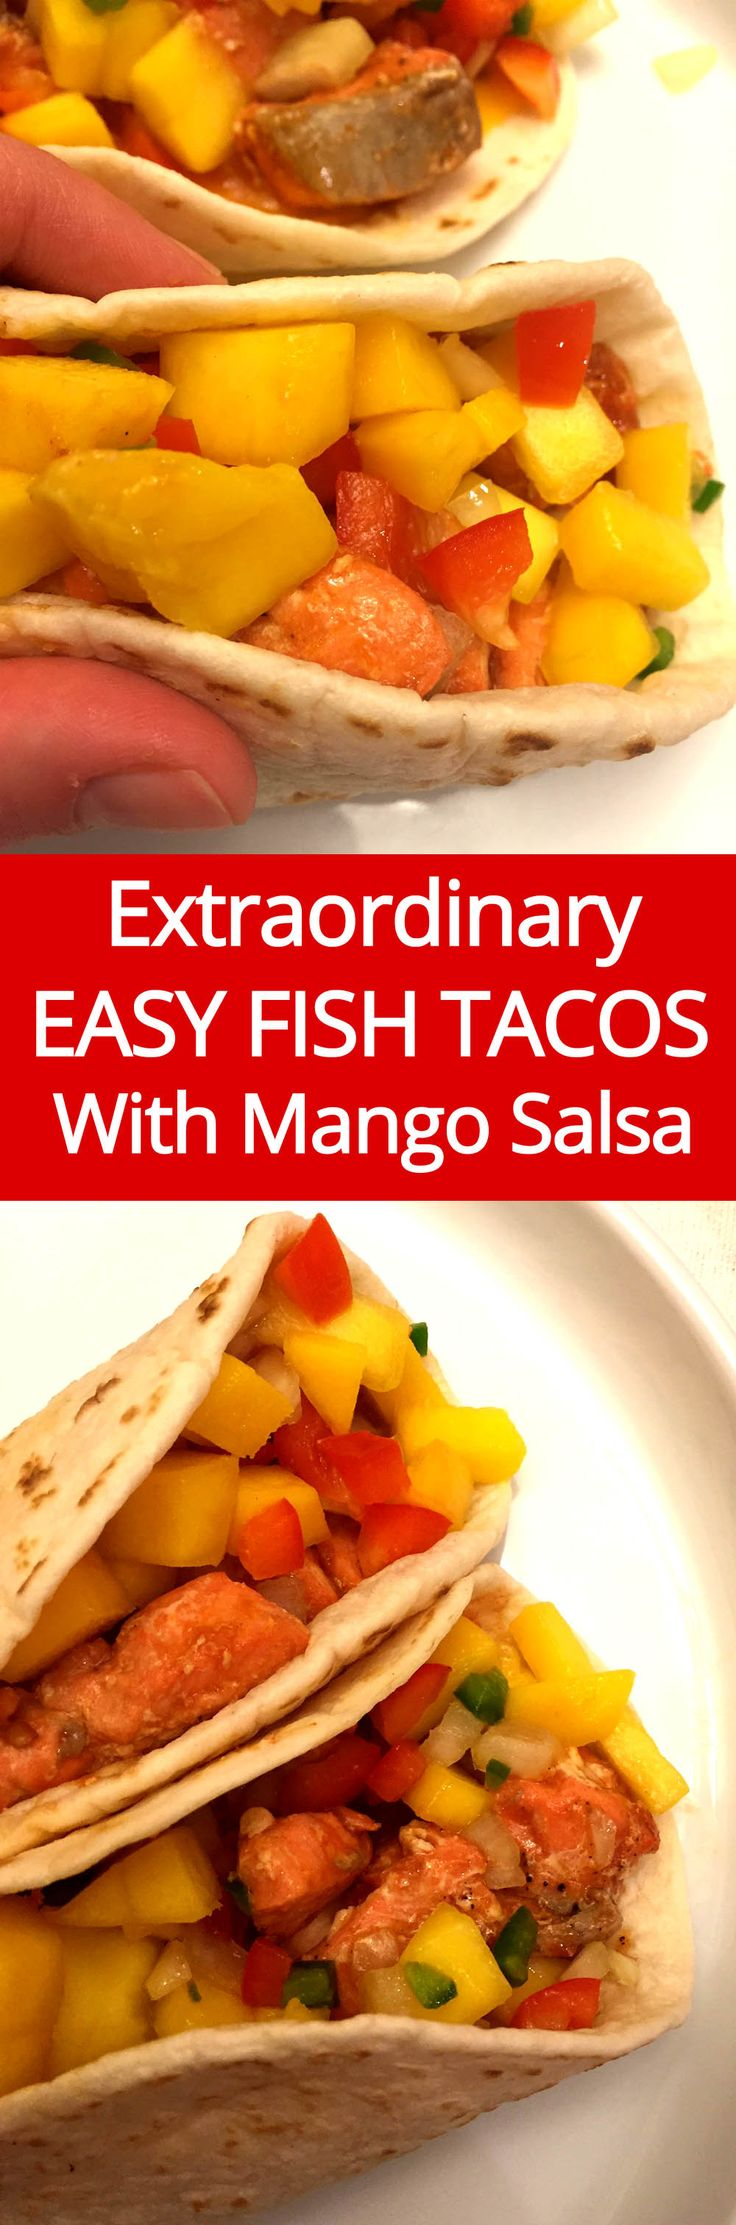 17 best images about south of the border recipes on for Simple fish taco recipe